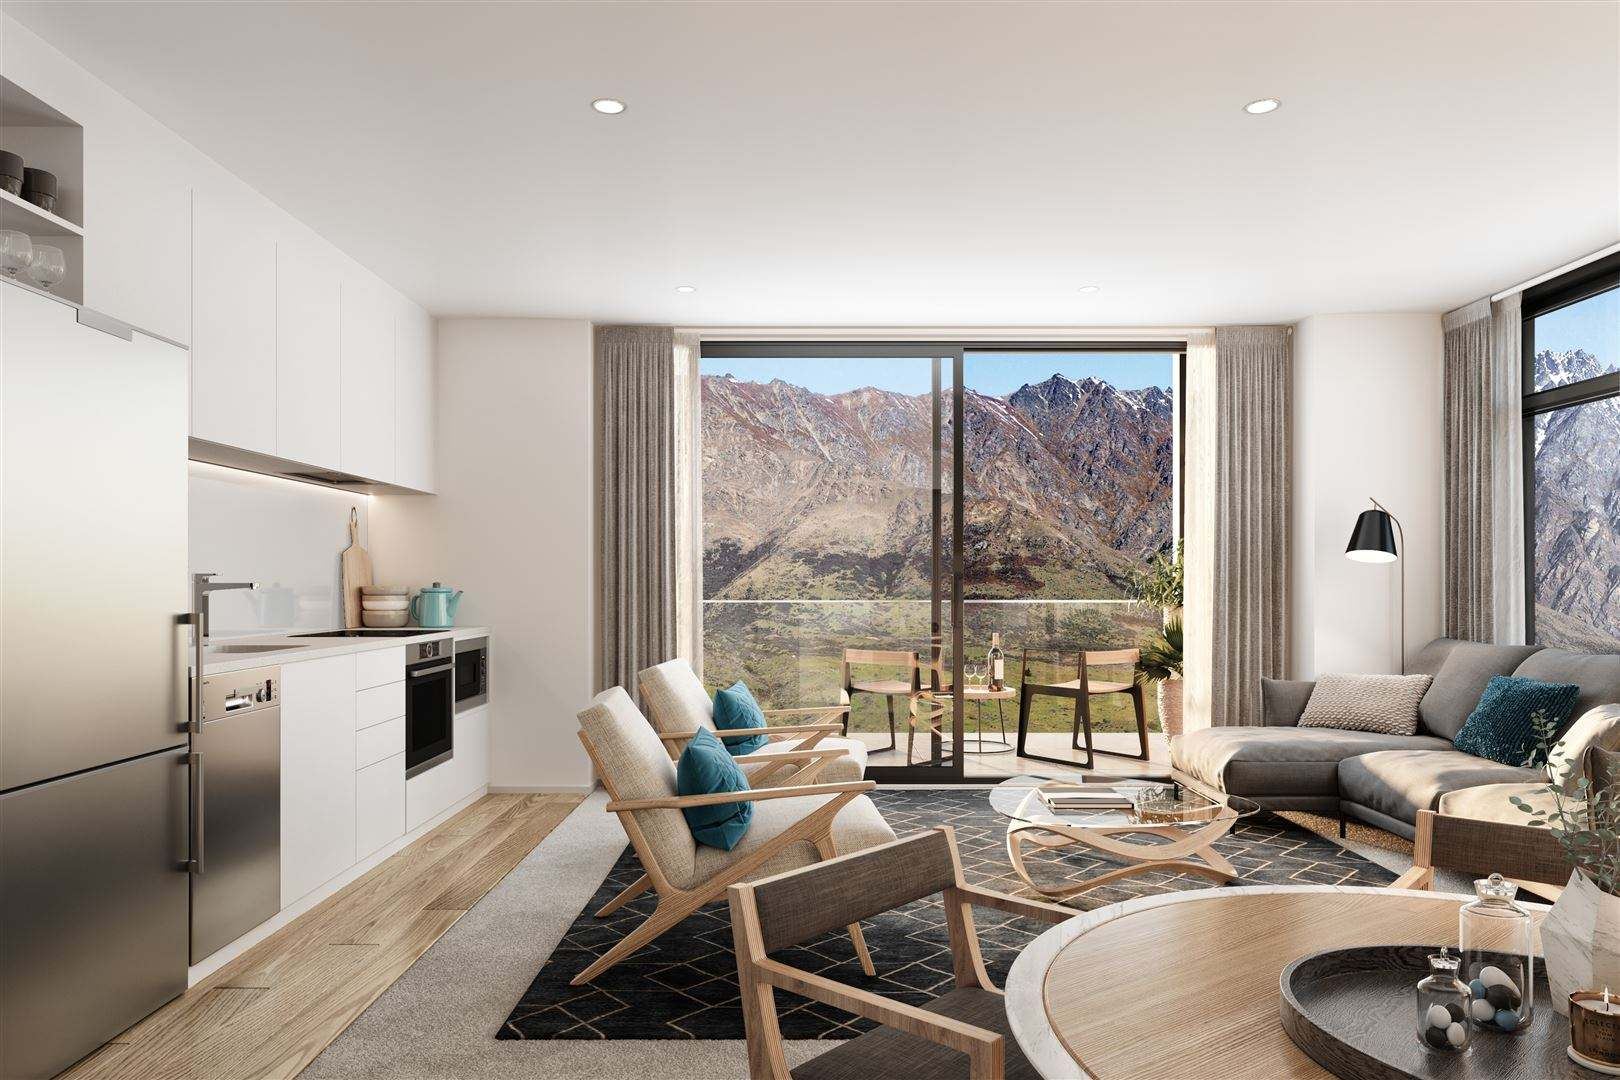 Queenstown 2房 Brand New Apartments-Top Location-Top Quality